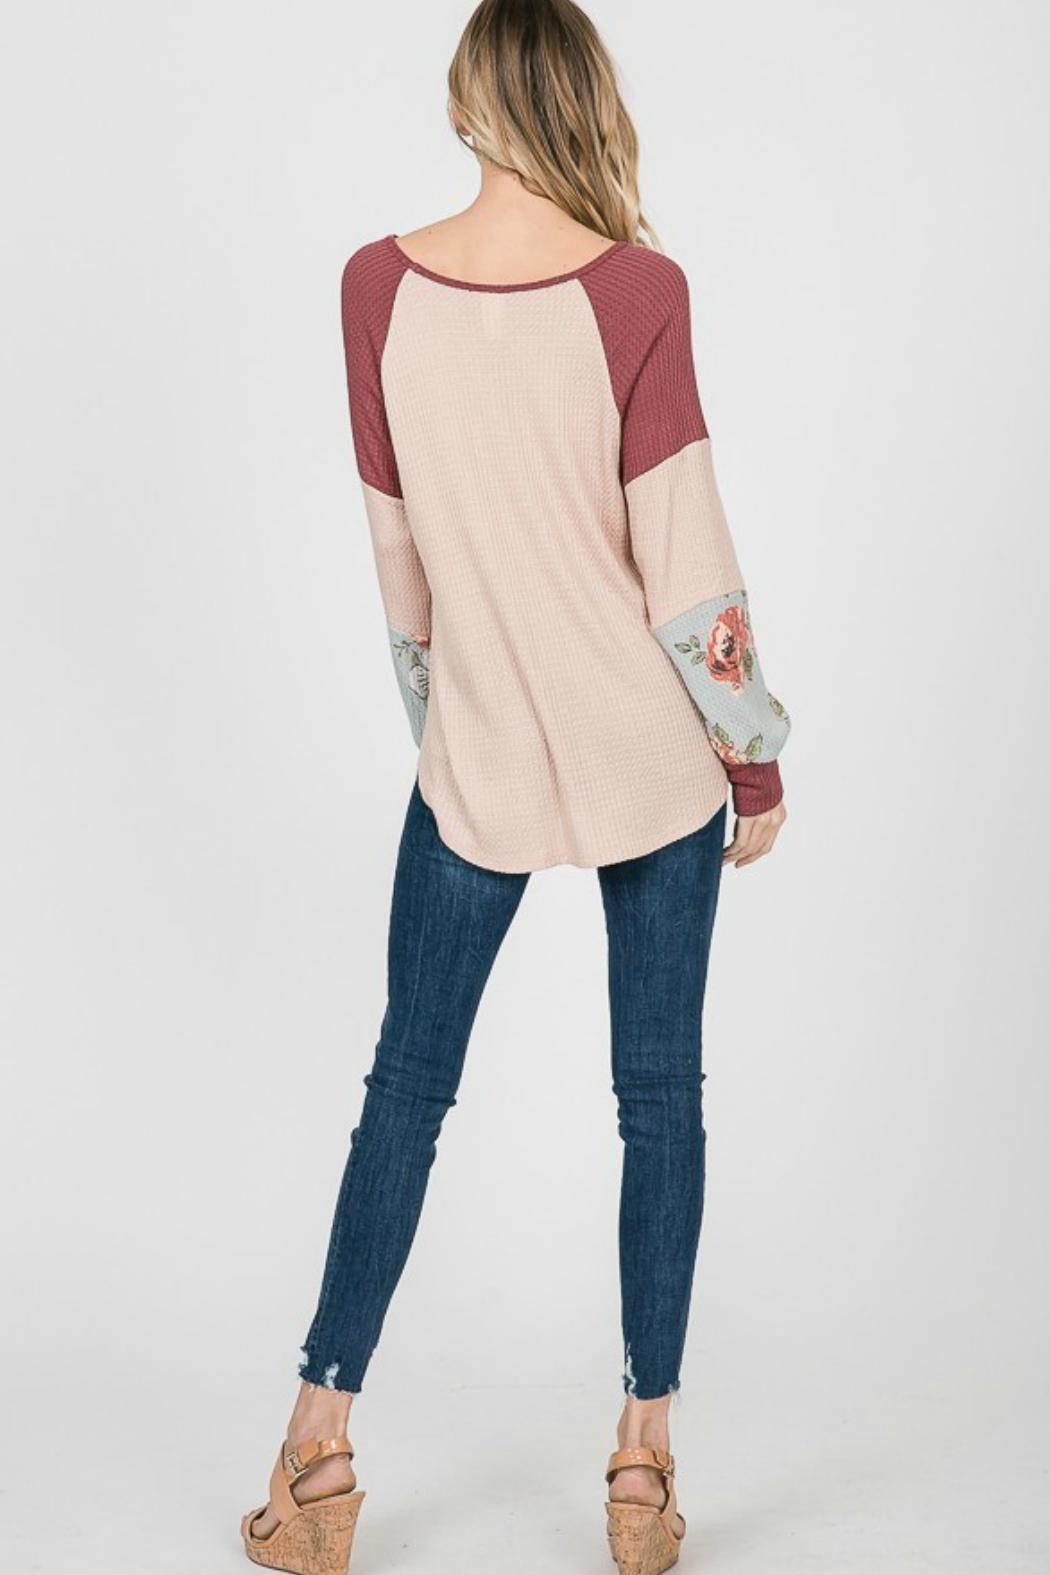 7th Ray Floral Sleeve Pullover - Side Cropped Image